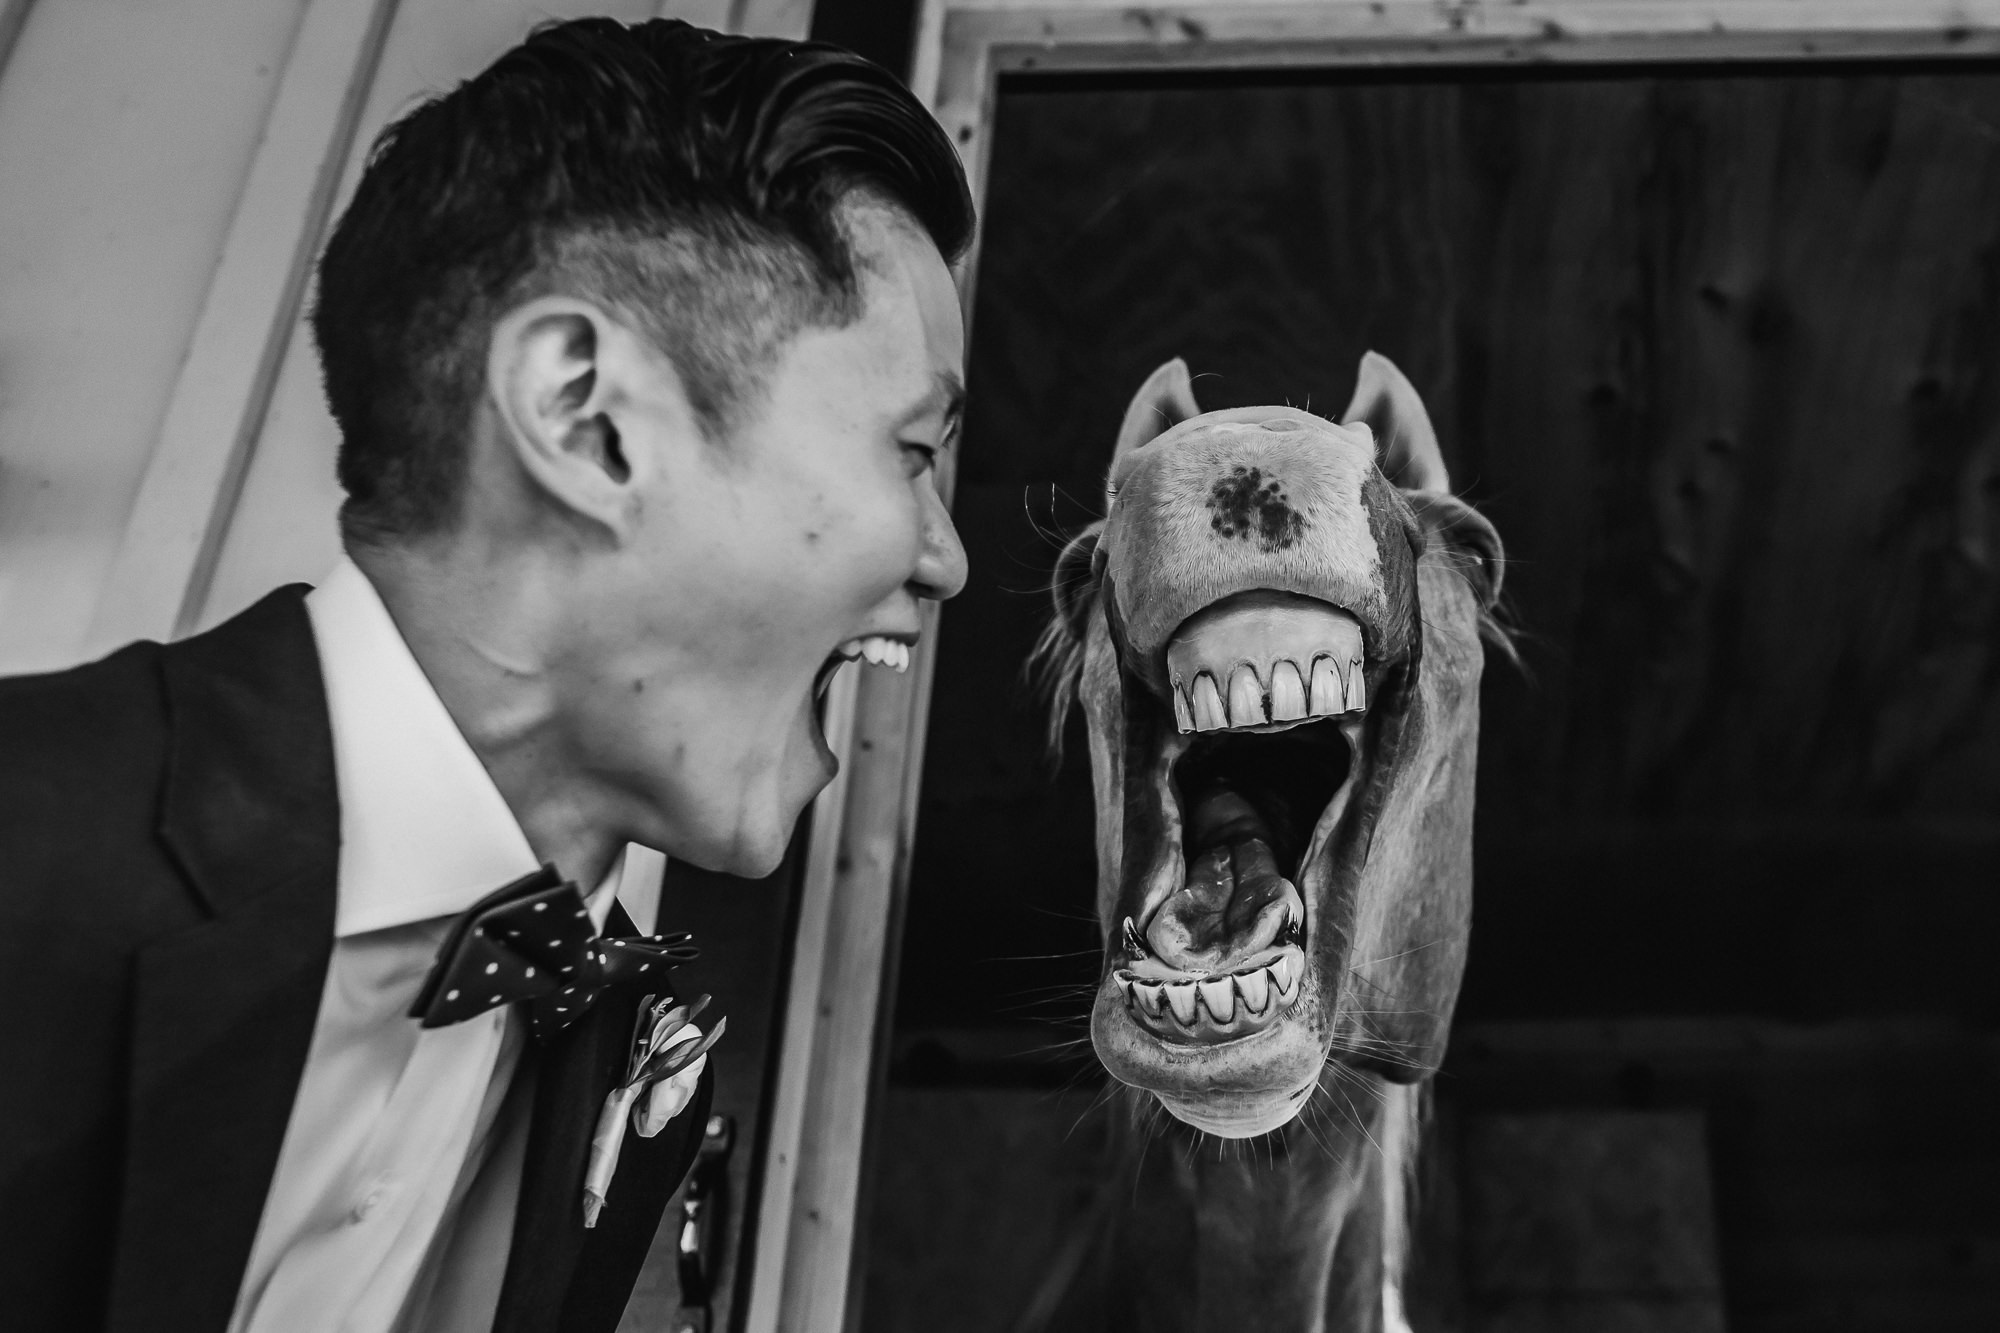 Hilarious photo of groom and picture of horse - photo by Ken Pak